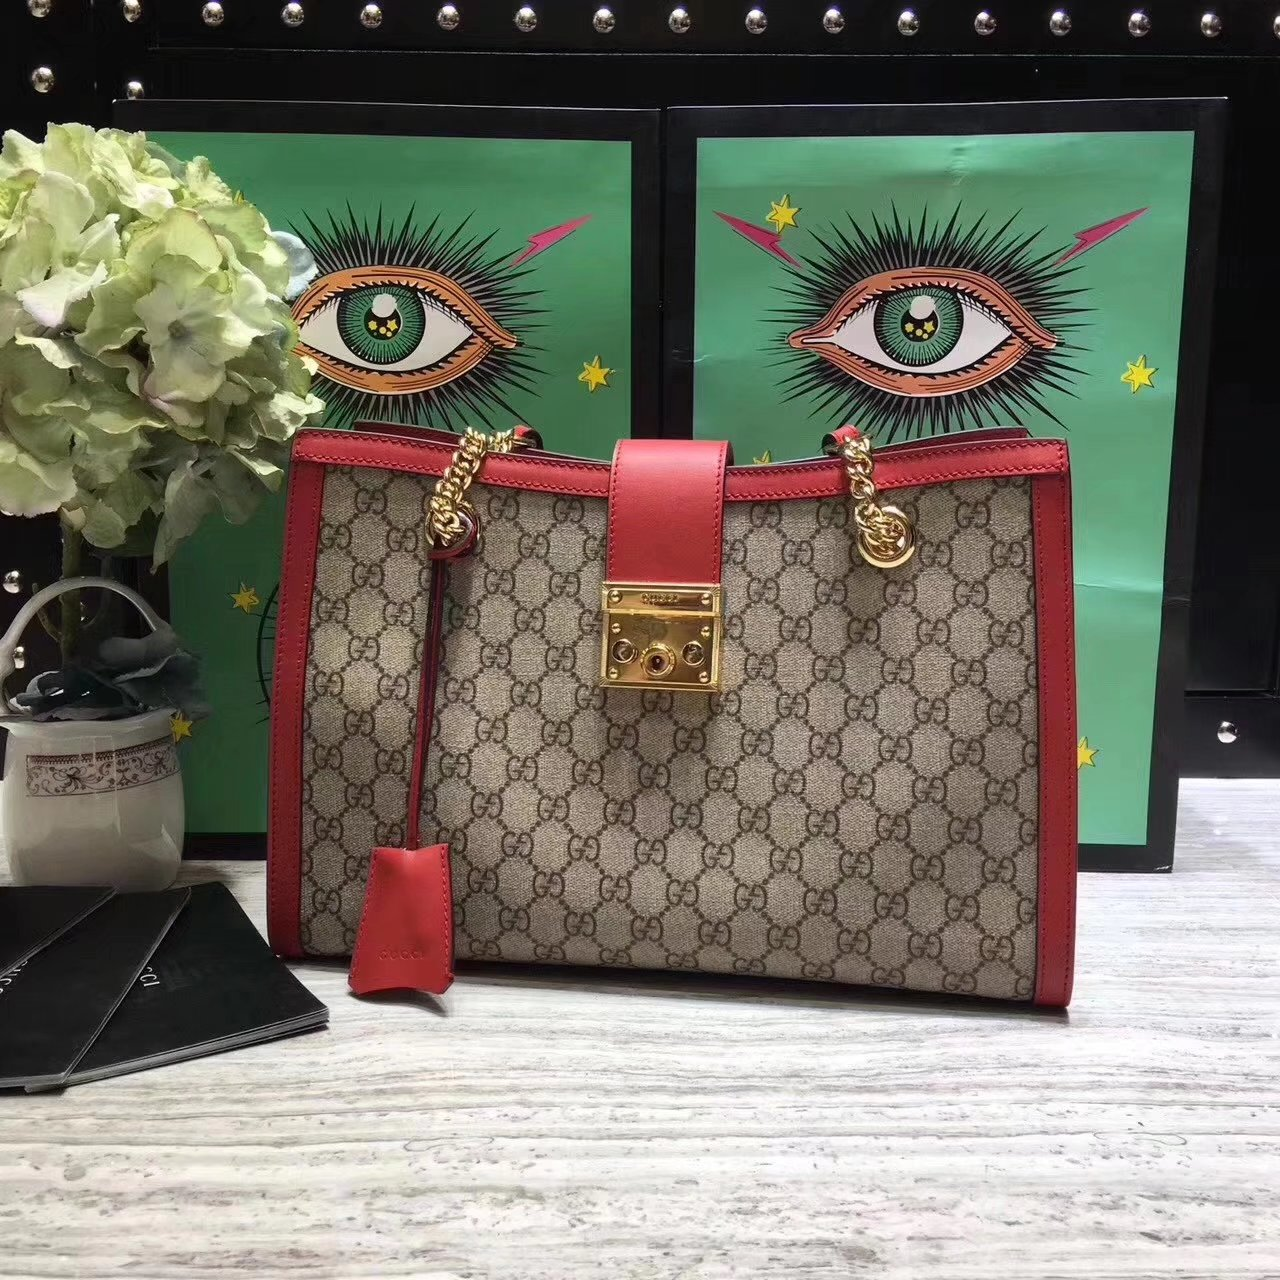 Original Quality Gucci 479197 Padlock Medium GG Supreme Canvas Shoulder Bag Red